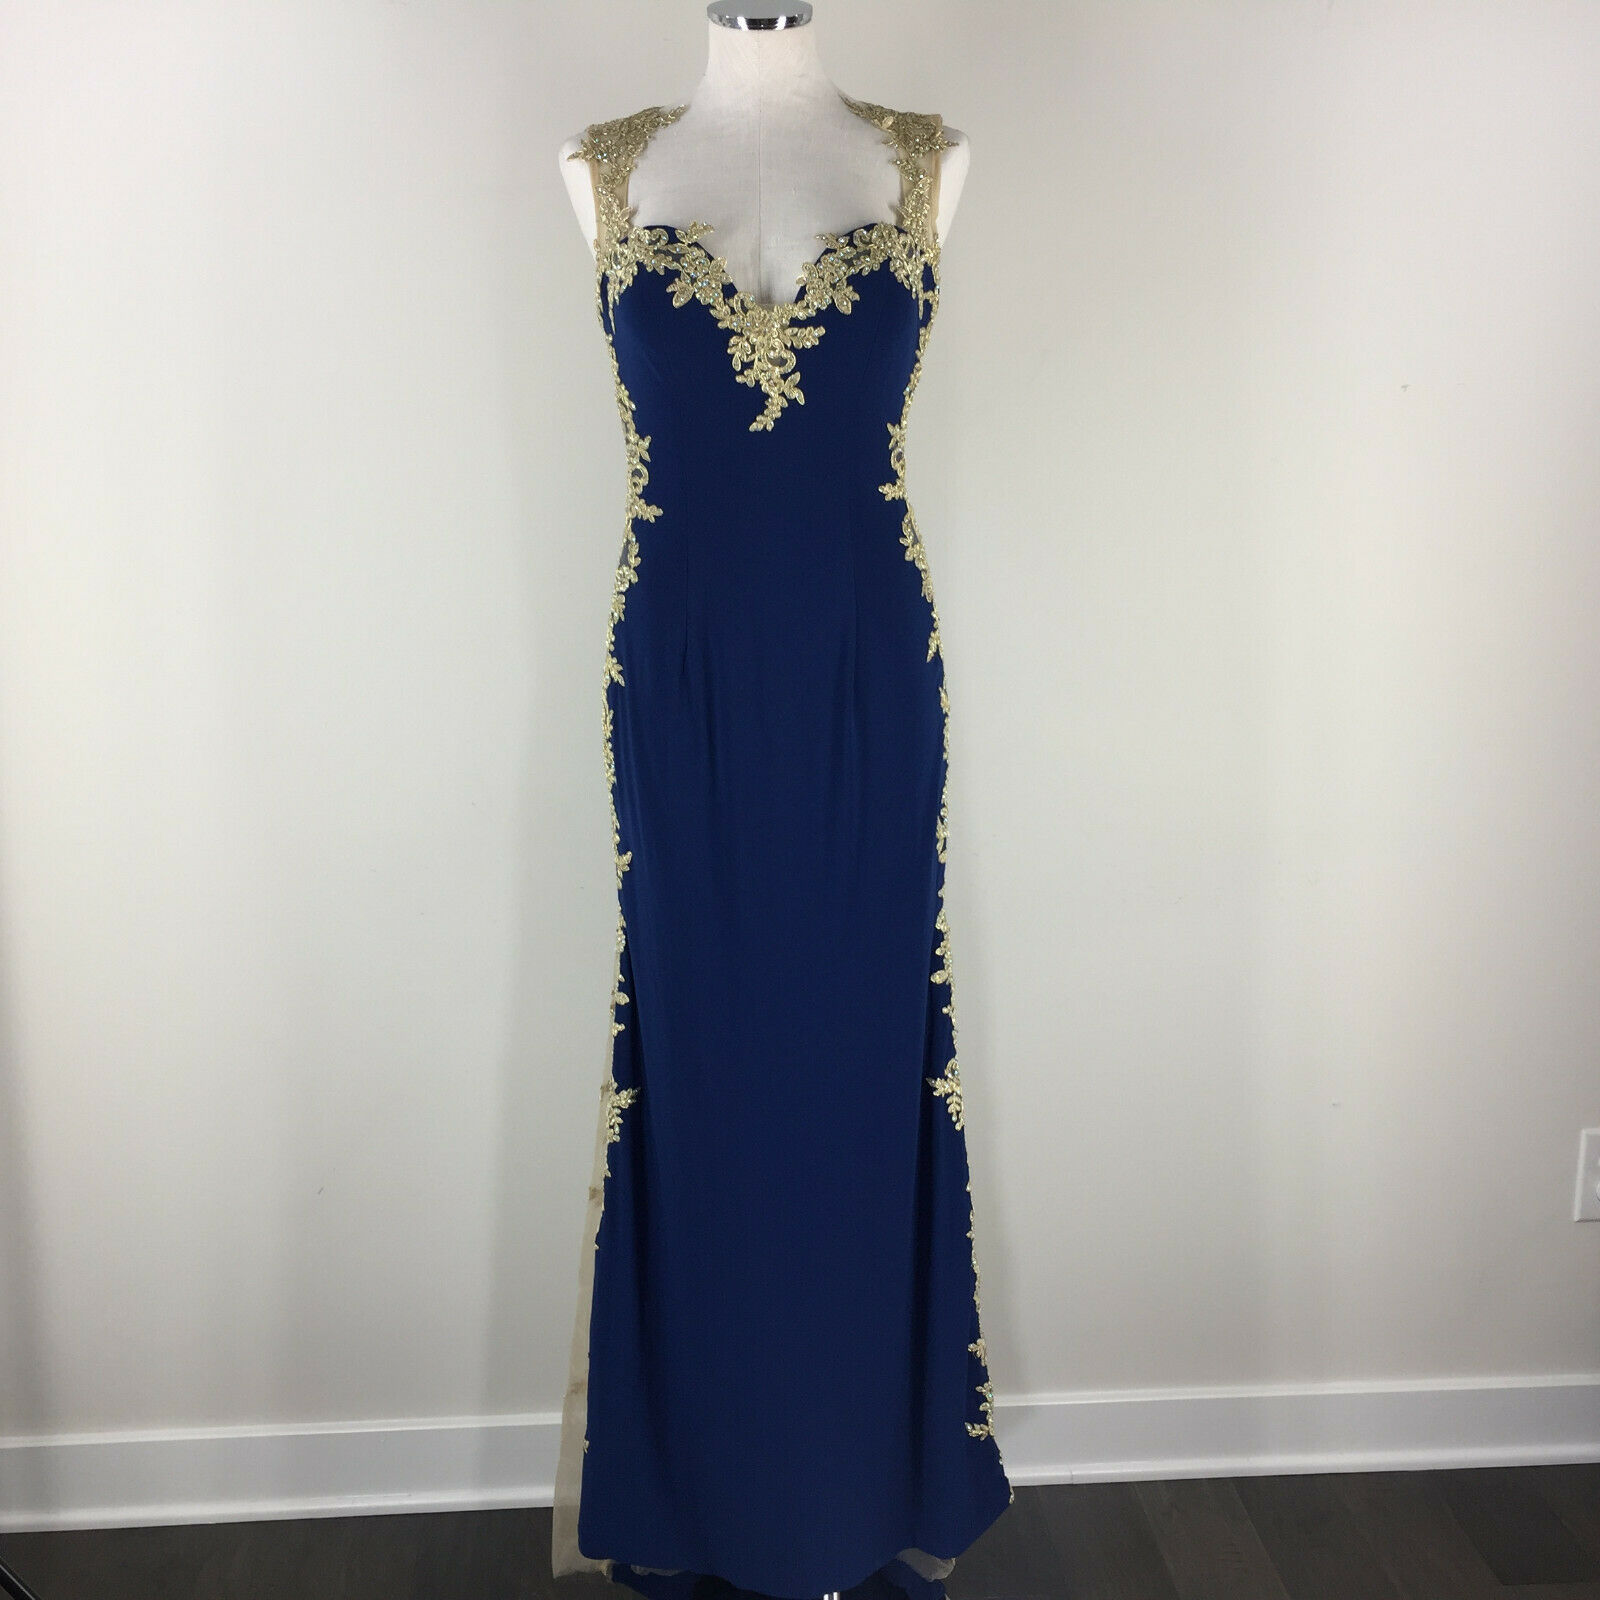 Abby Paris M 6 8 Blue Gold Lace Formal Evening Gown Dress prom Stretch train